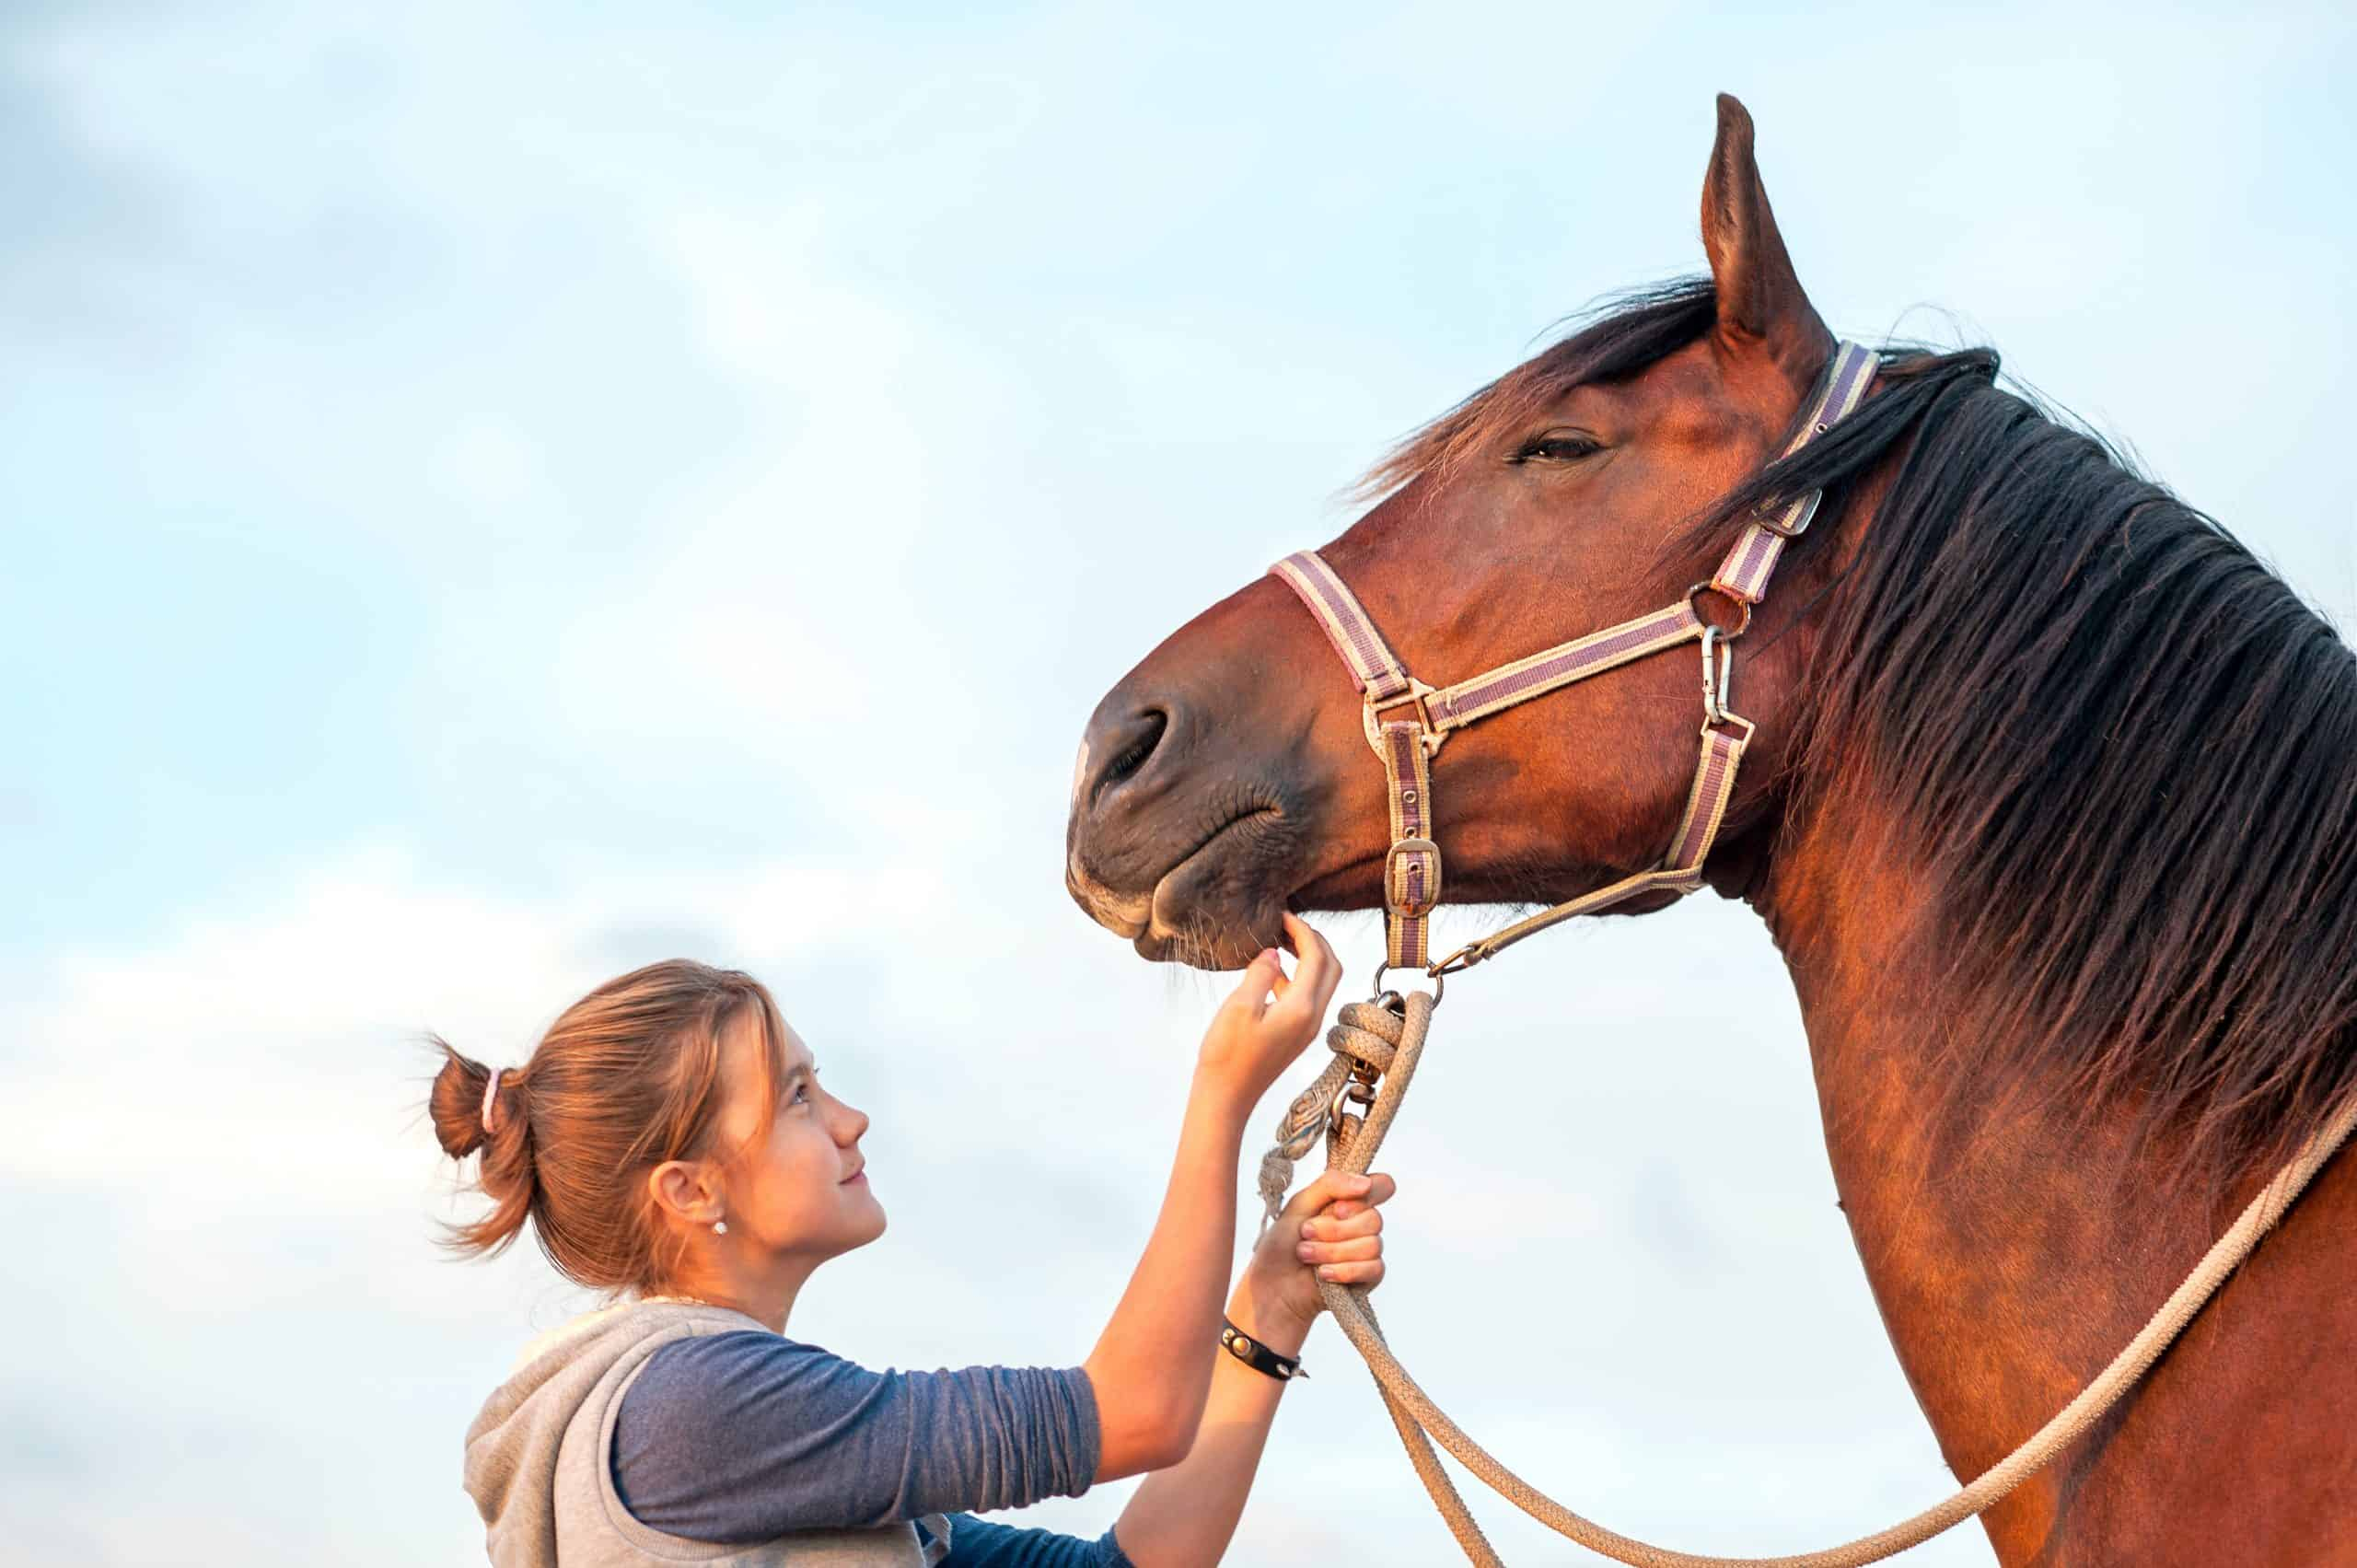 Young cheerful teenage girl stroking big chestnut horse's nose. Vibrant multicolored summertime outdoors horizontal image.